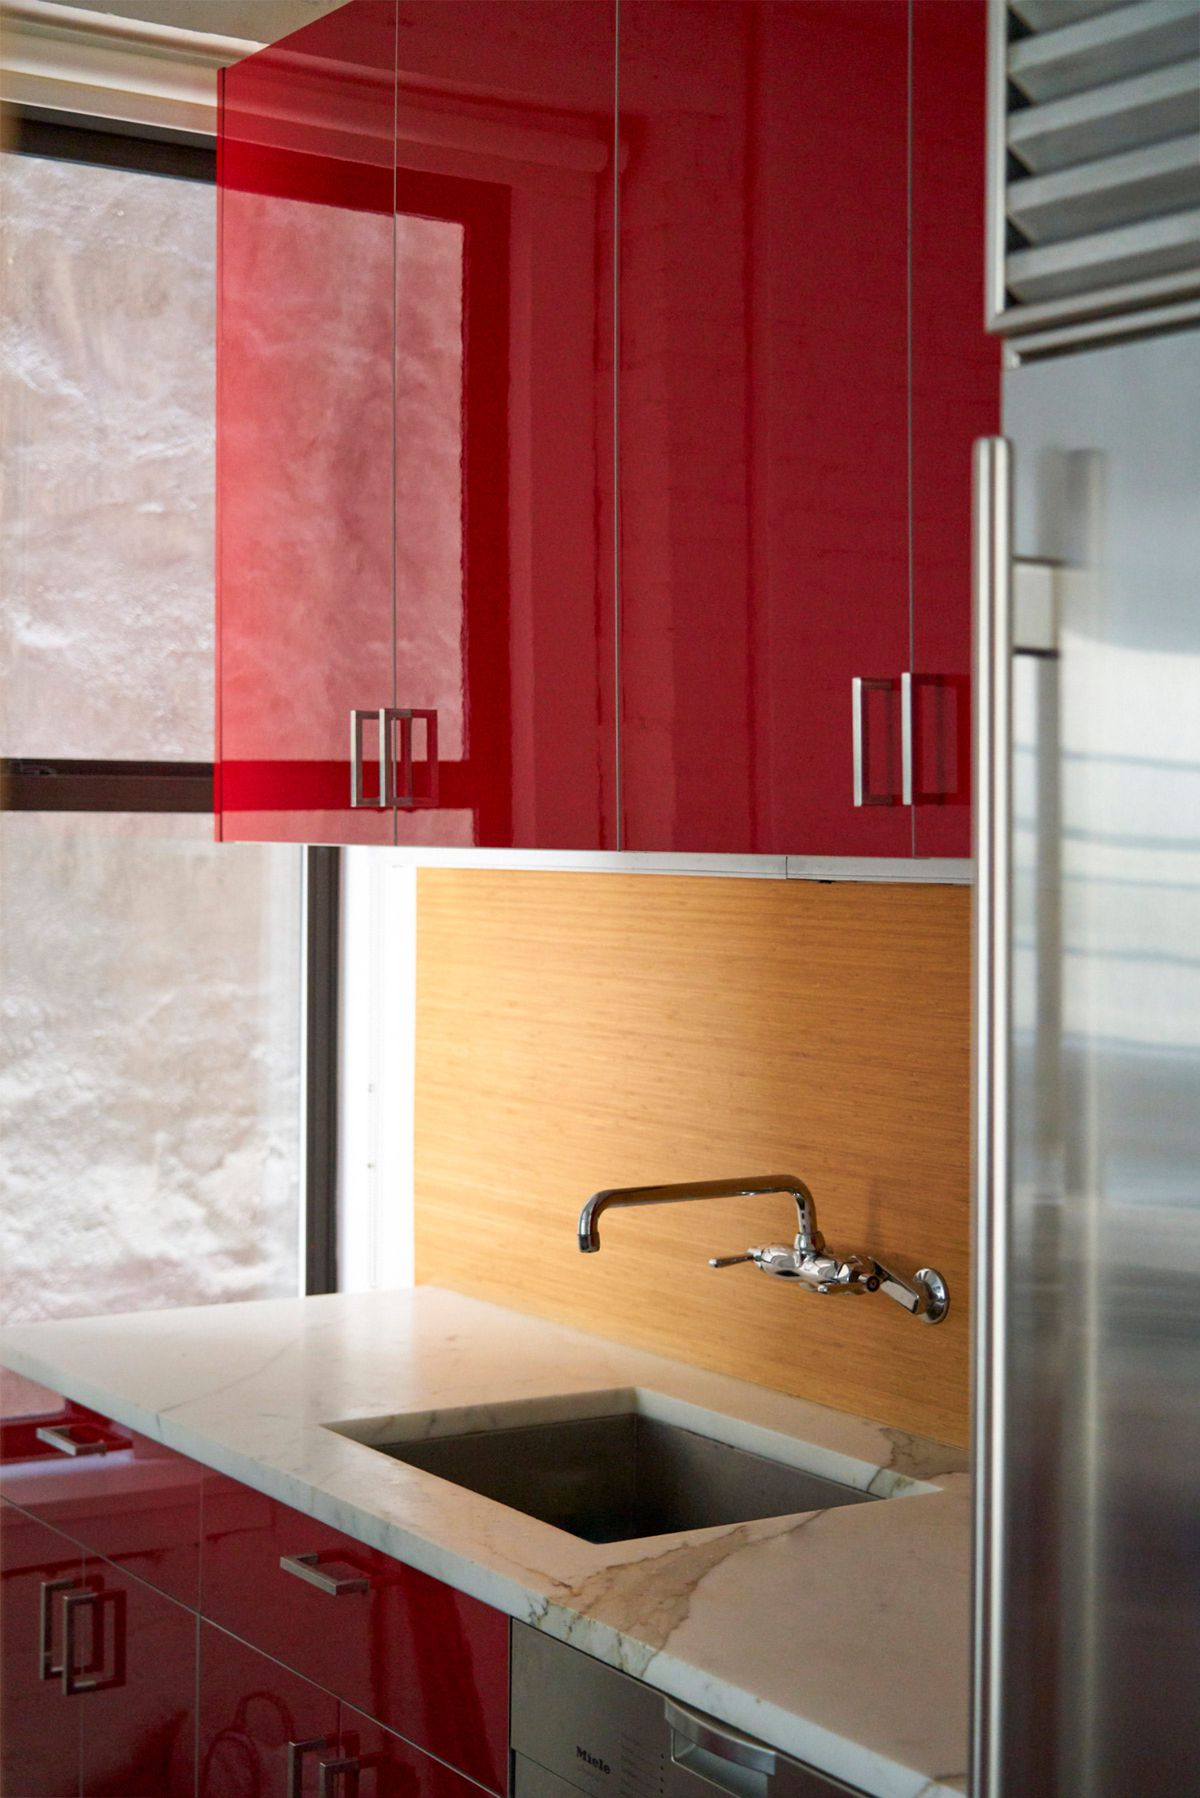 A close-up view of red kitchen cabinets, marble counters, and a stainless-steel fridge.